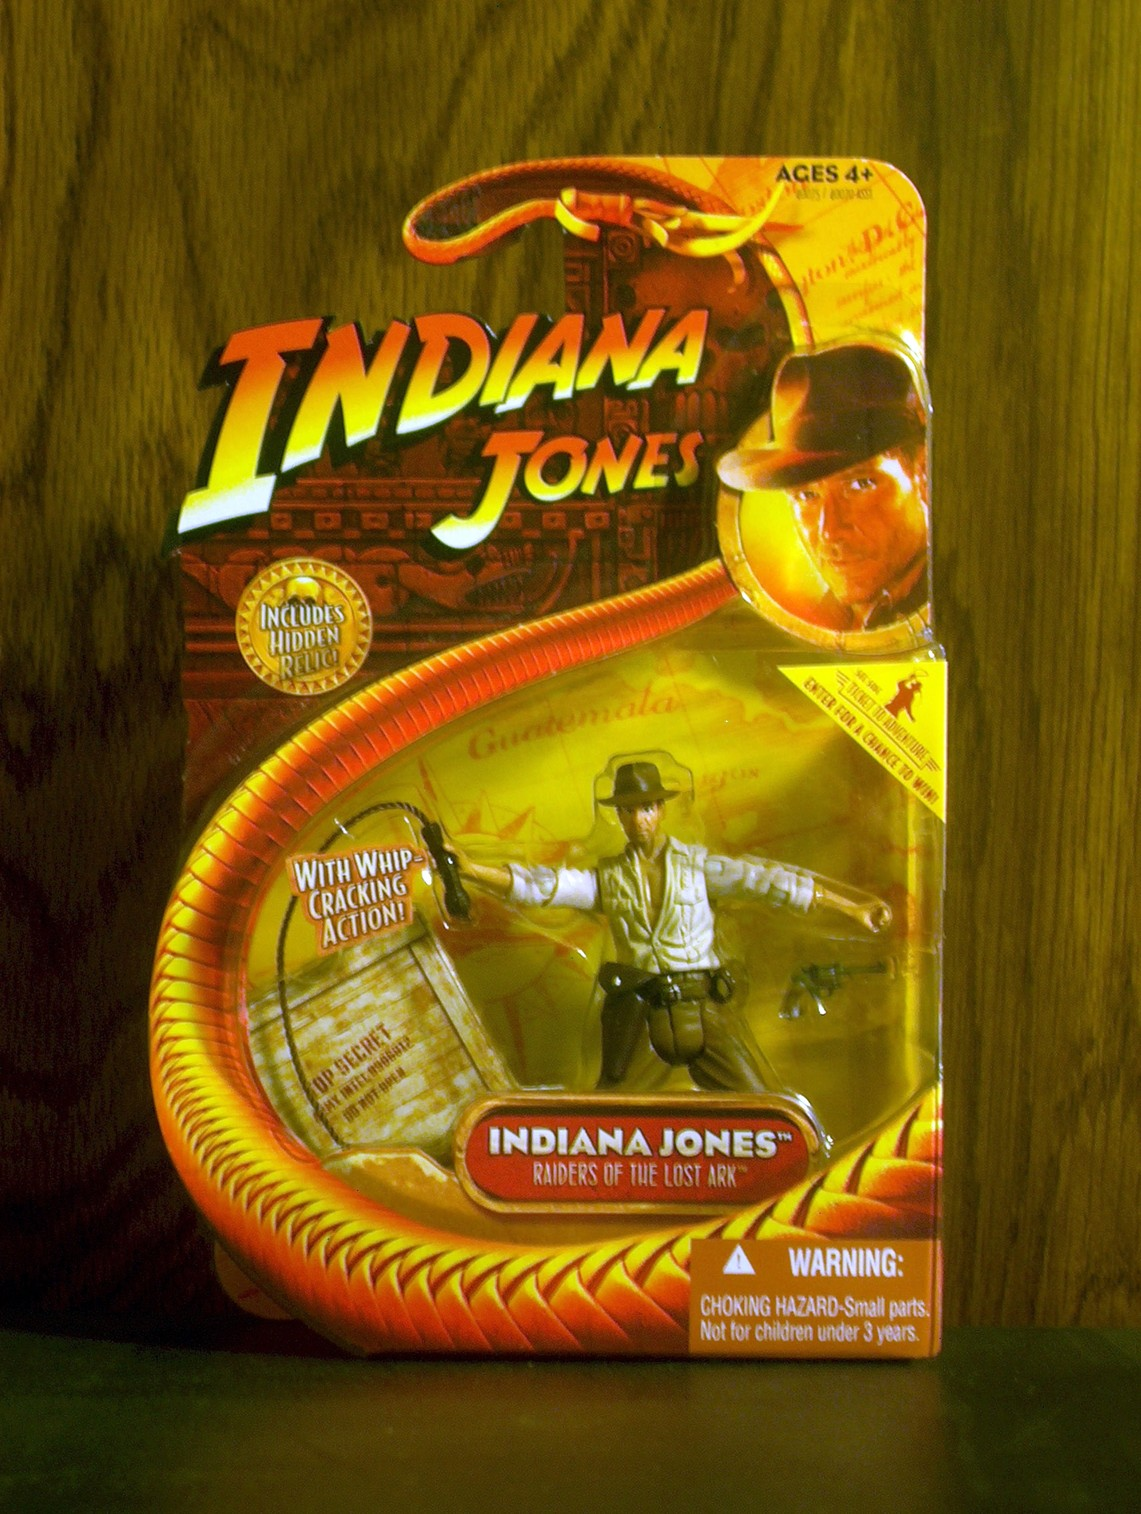 Indiana Jones with whip-cracking action